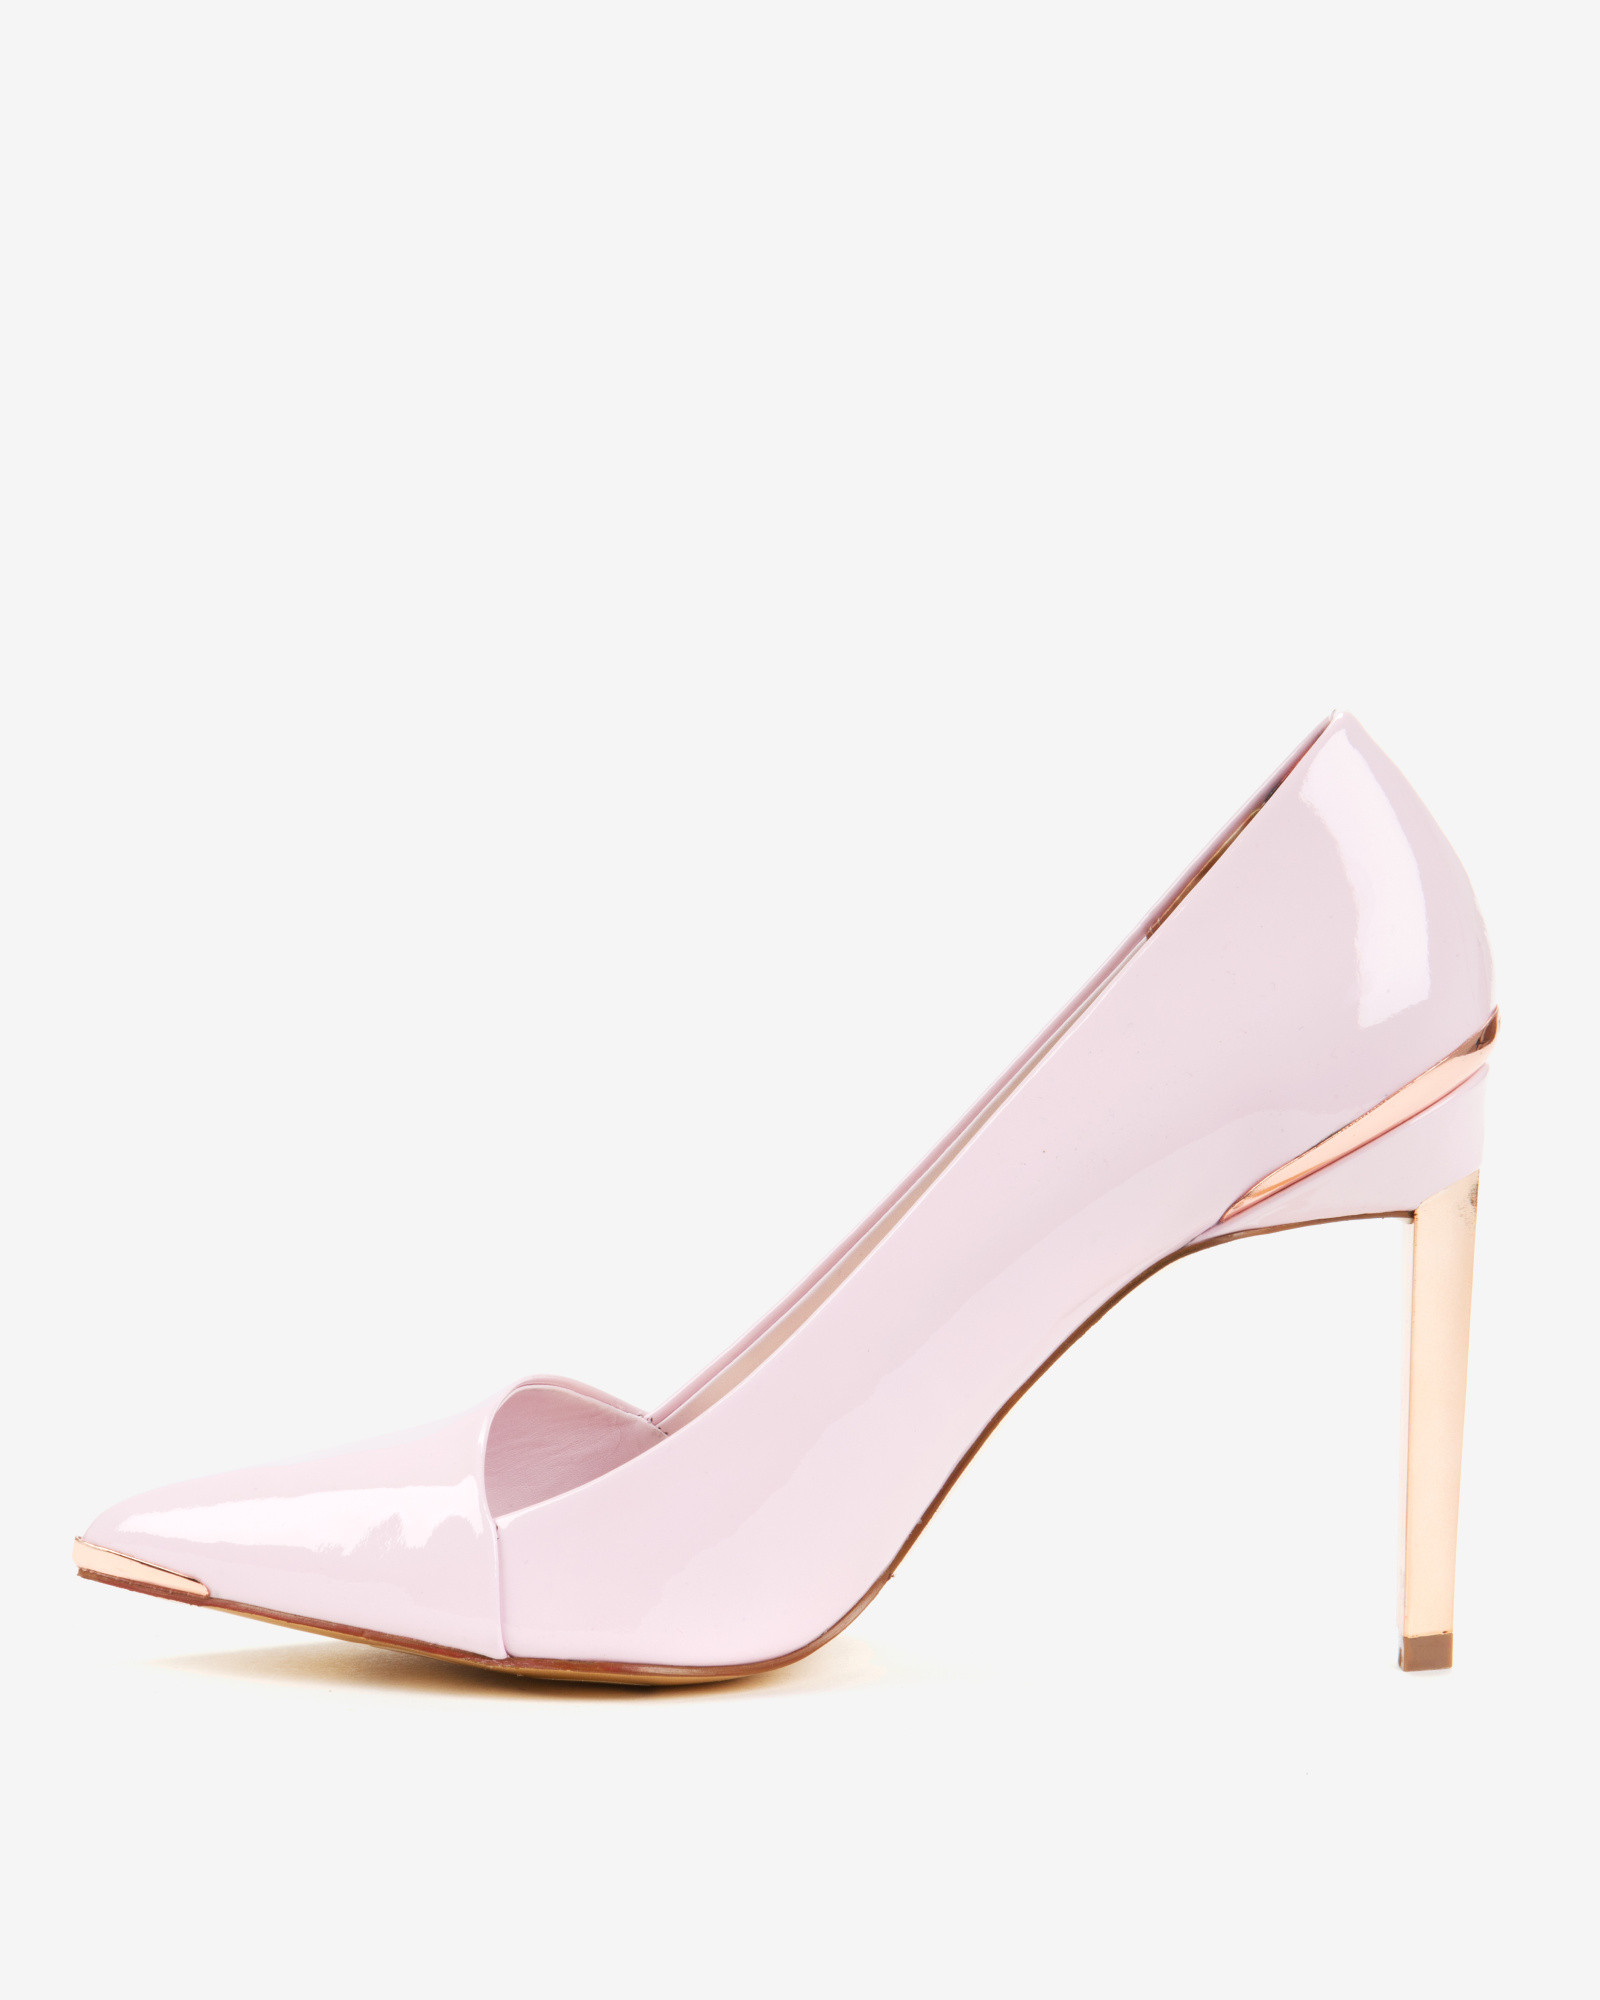 de06dafeceb Ted Baker Pink Pointed High Top Court Shoes